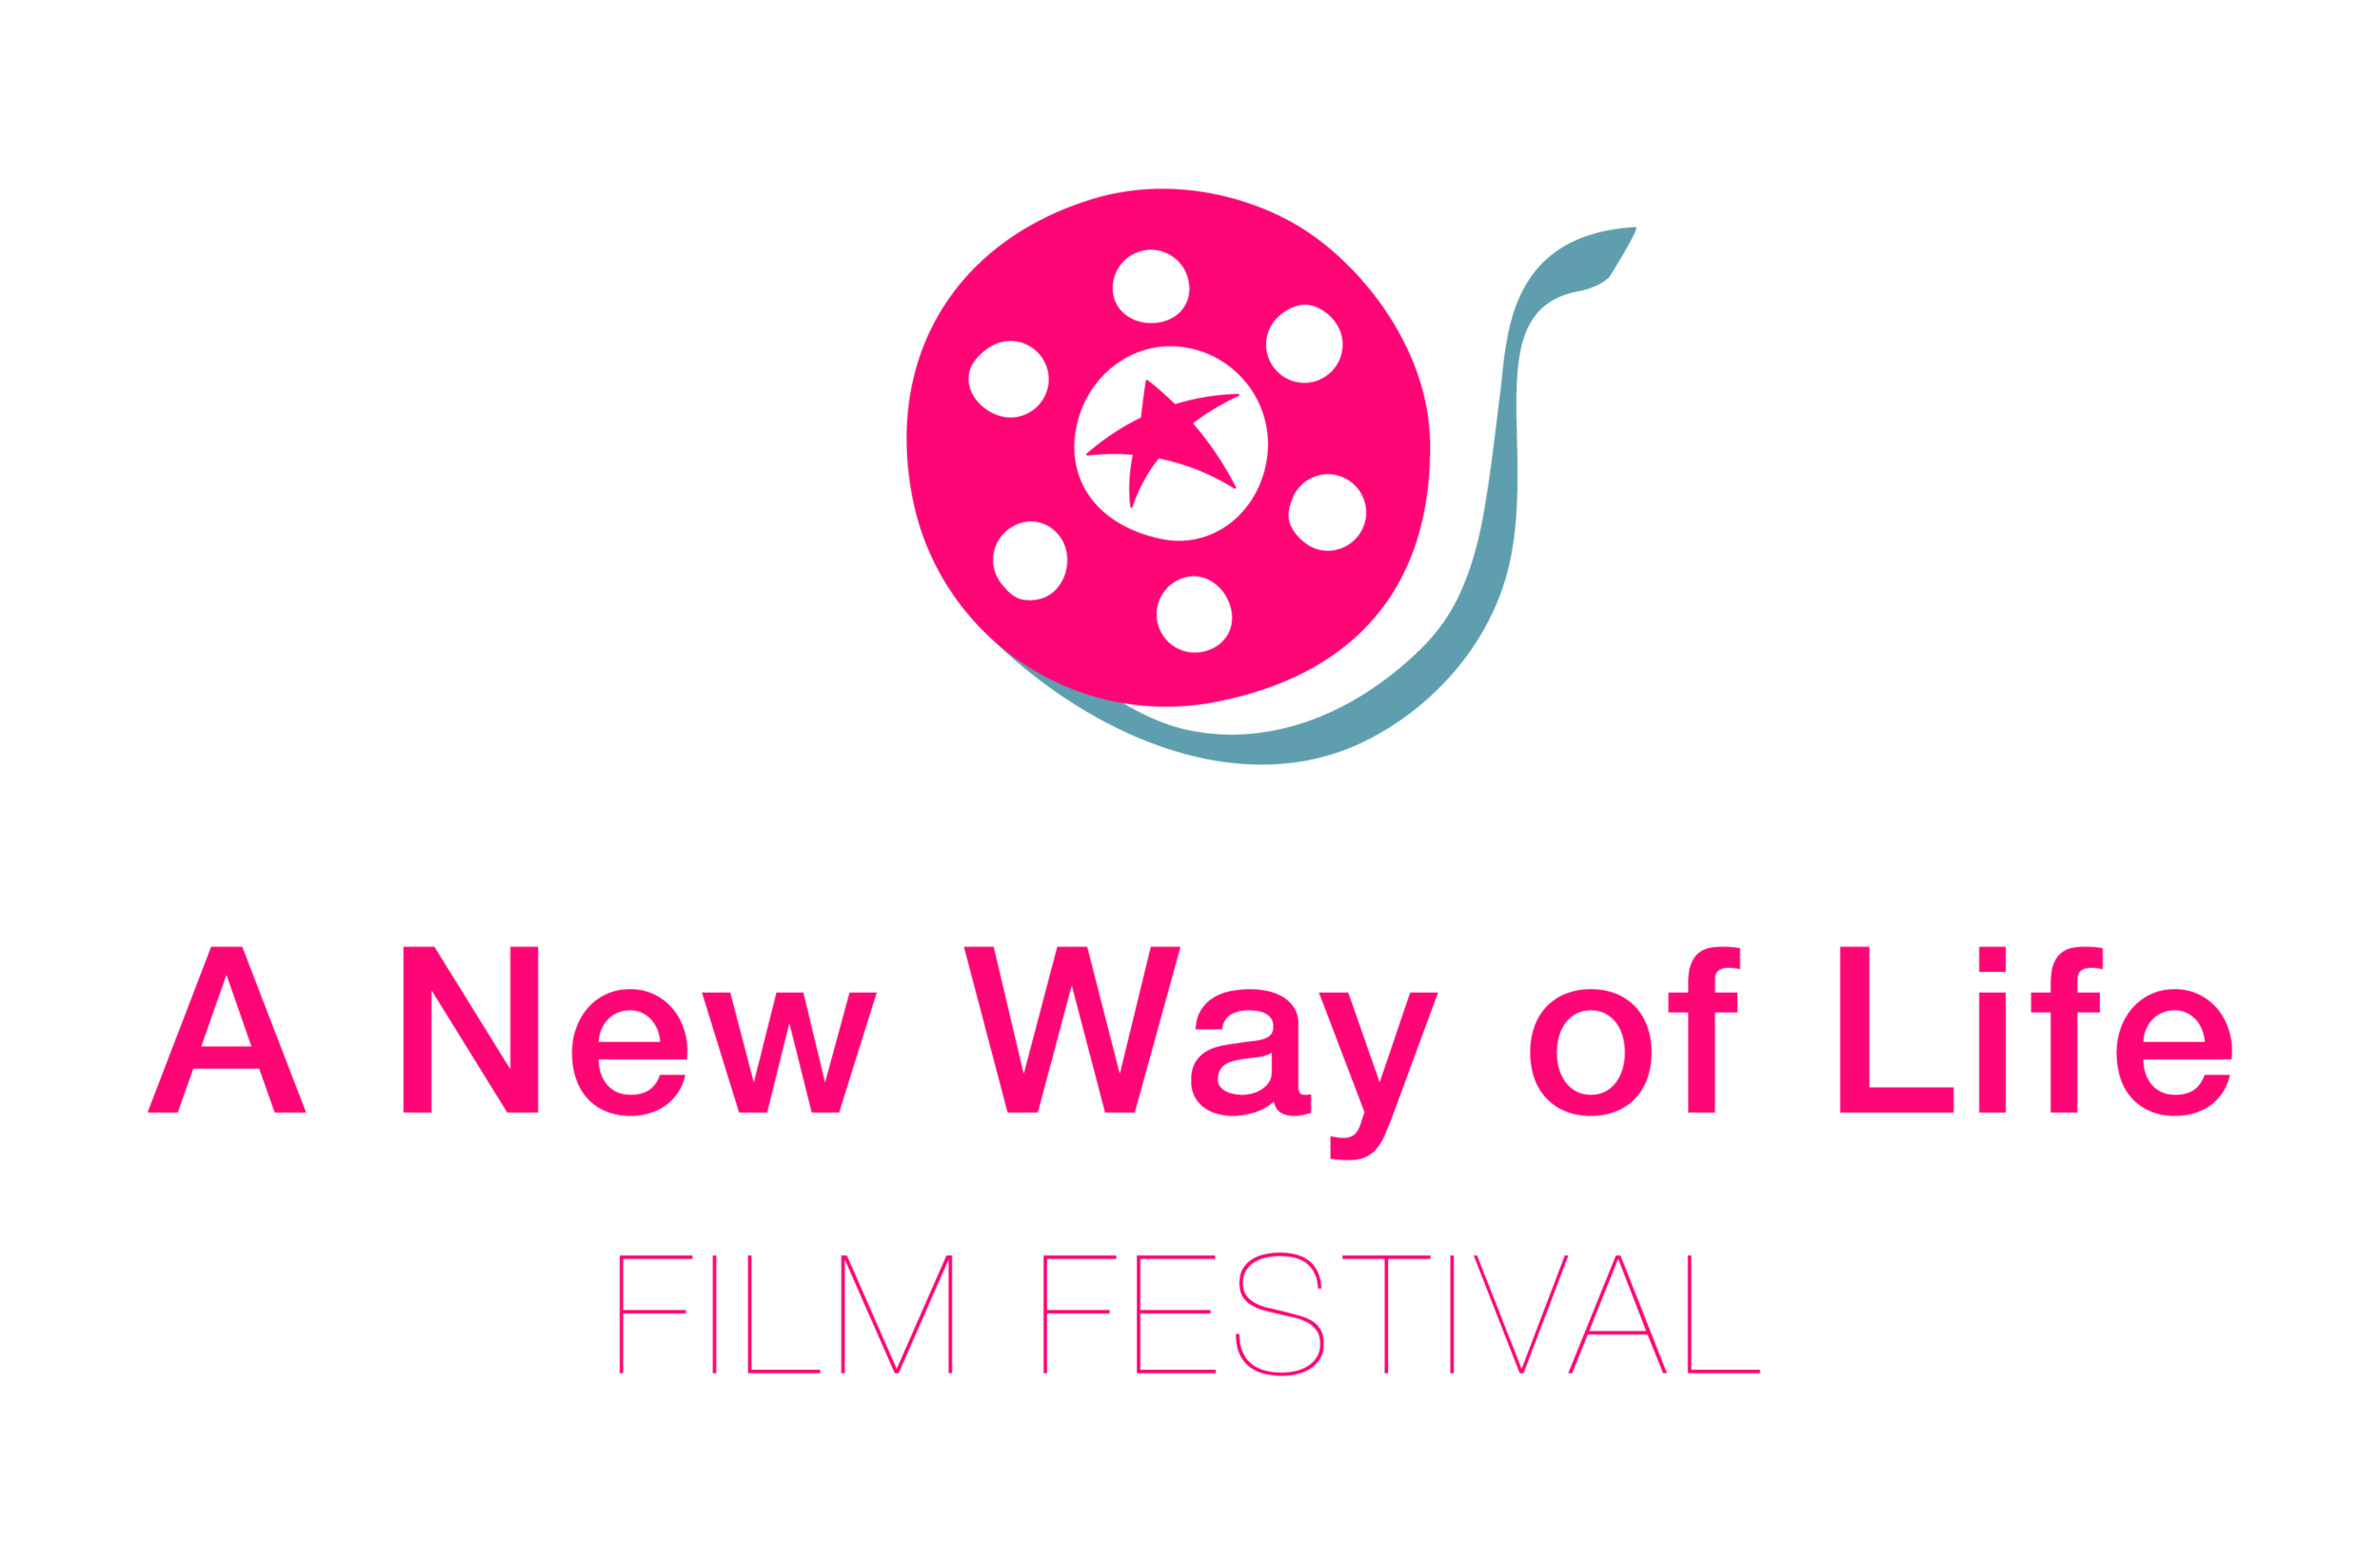 ANWOL_FilmFestival_Logo_Stacked_Full Color.png